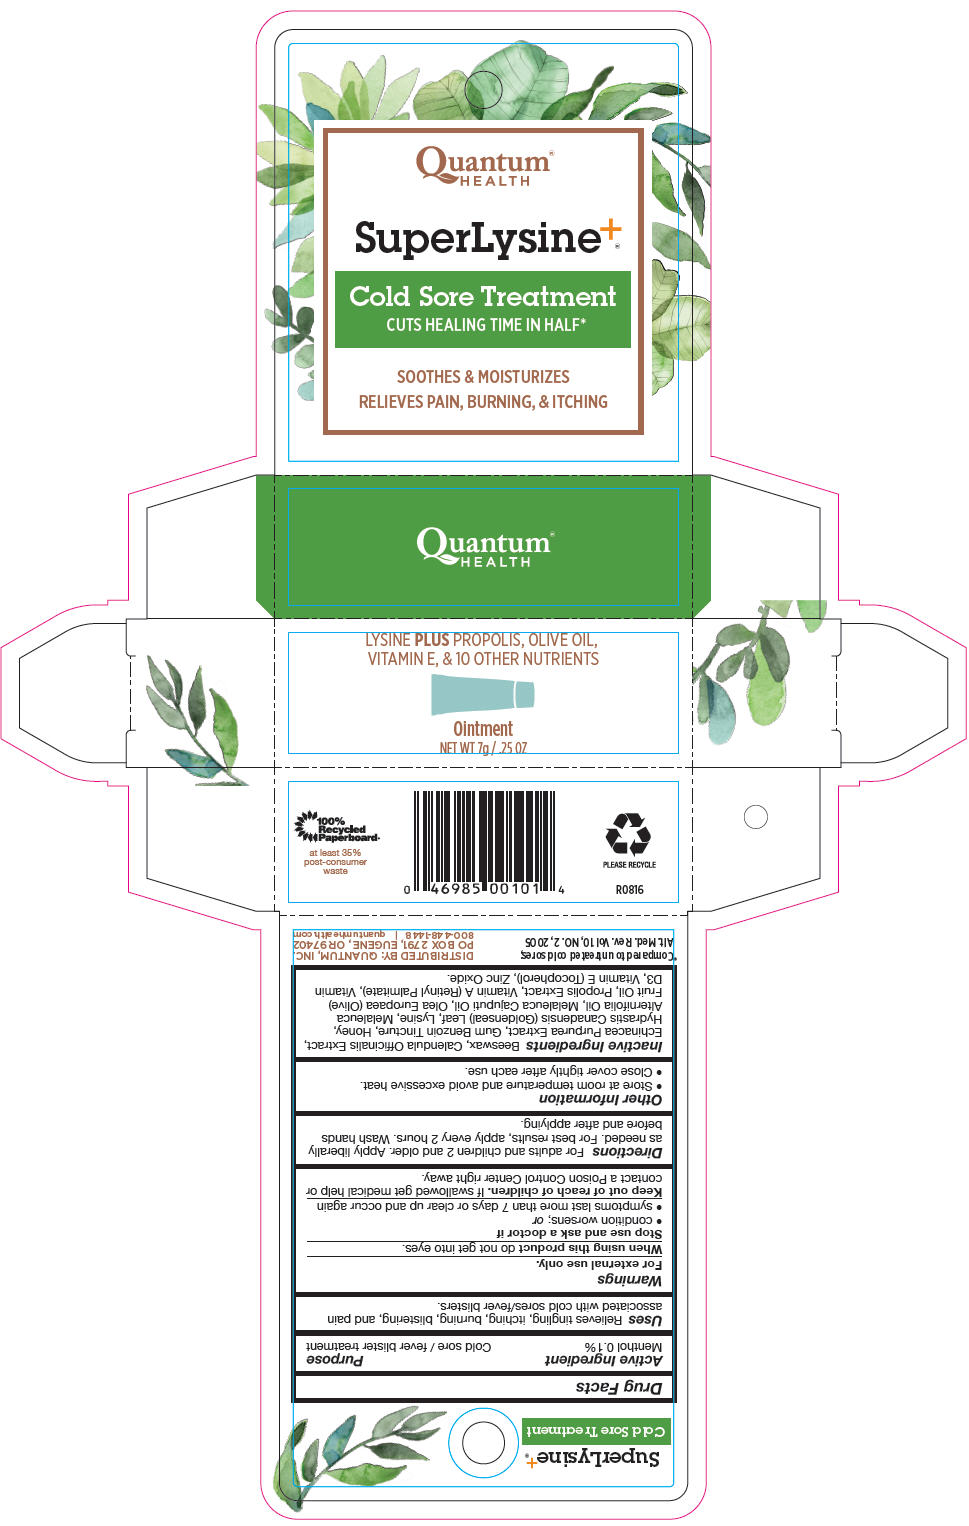 Menthol, Unspecified Form (Super Lysine plus)